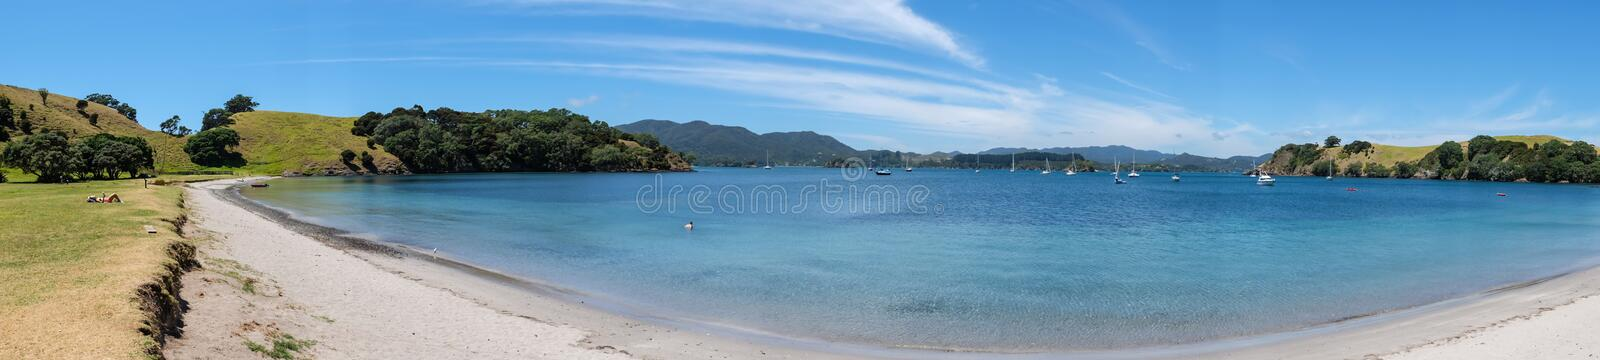 Urupukapuka Island, Bay of Islands, New Zealand, NZ - February 1. 2017: Tourists on an uncrowded beach in summer, with boats anchored in the bay royalty free stock image